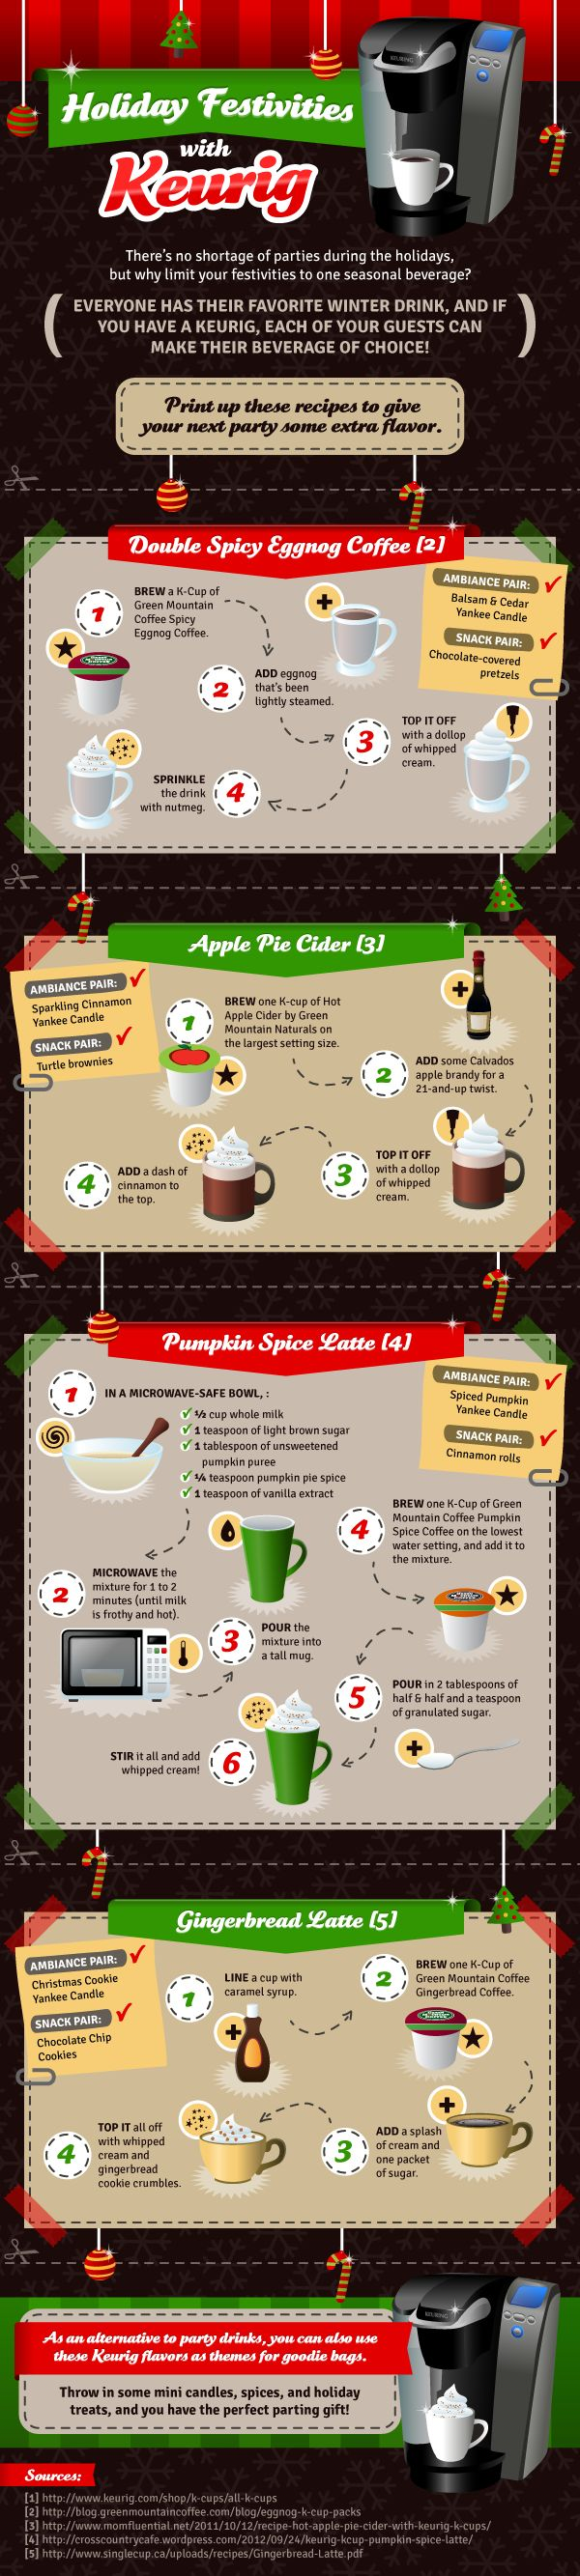 Easy Coffee-Shop Style Holiday Drinks at Home with your Keurig. Going to try pumpkin spice latte ASAP!